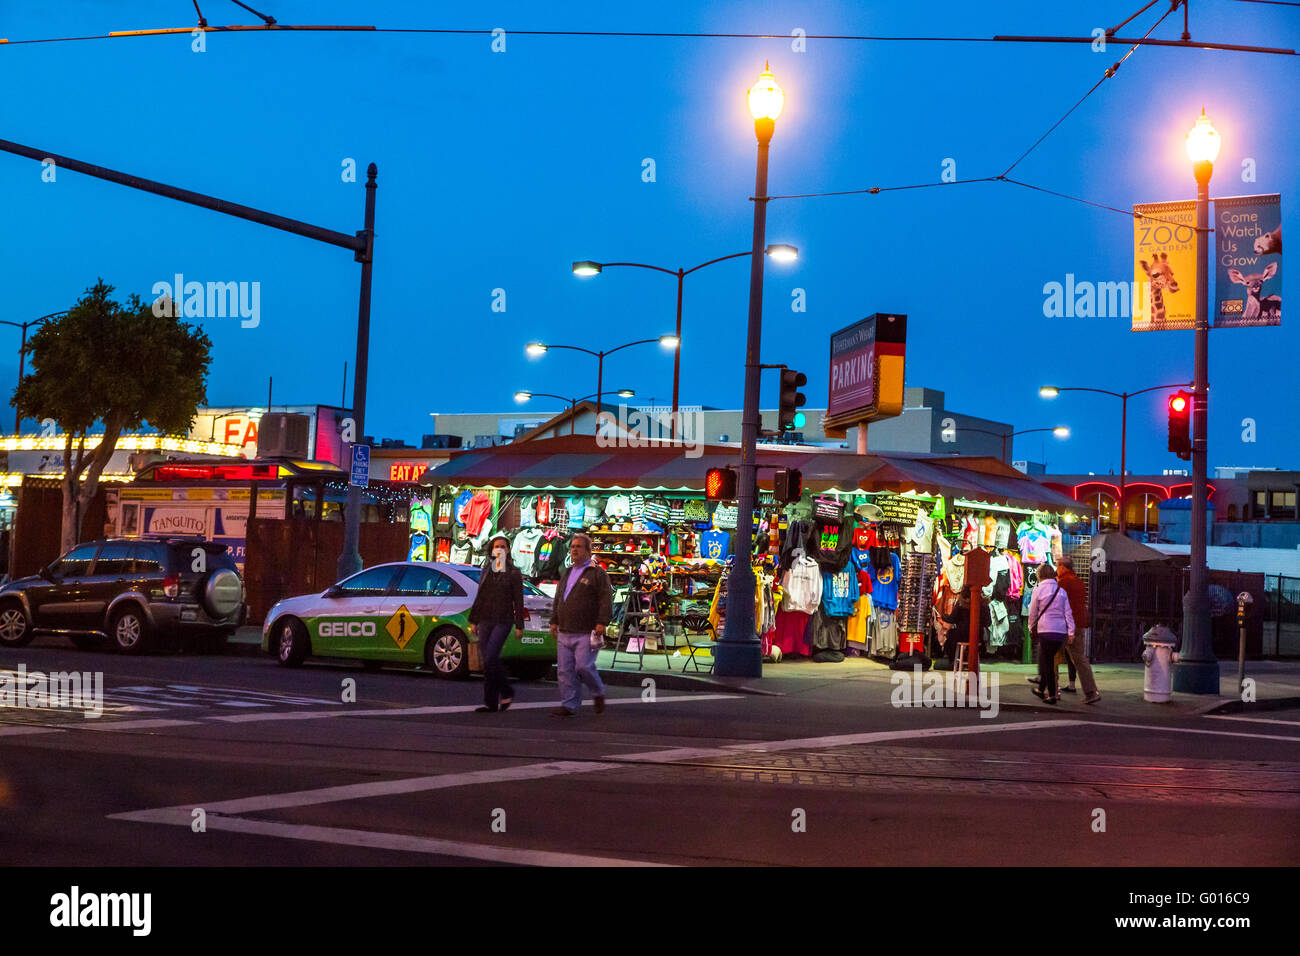 A souvenir shop in the Fisherman's Wharf area of San Francisco California - Stock Image